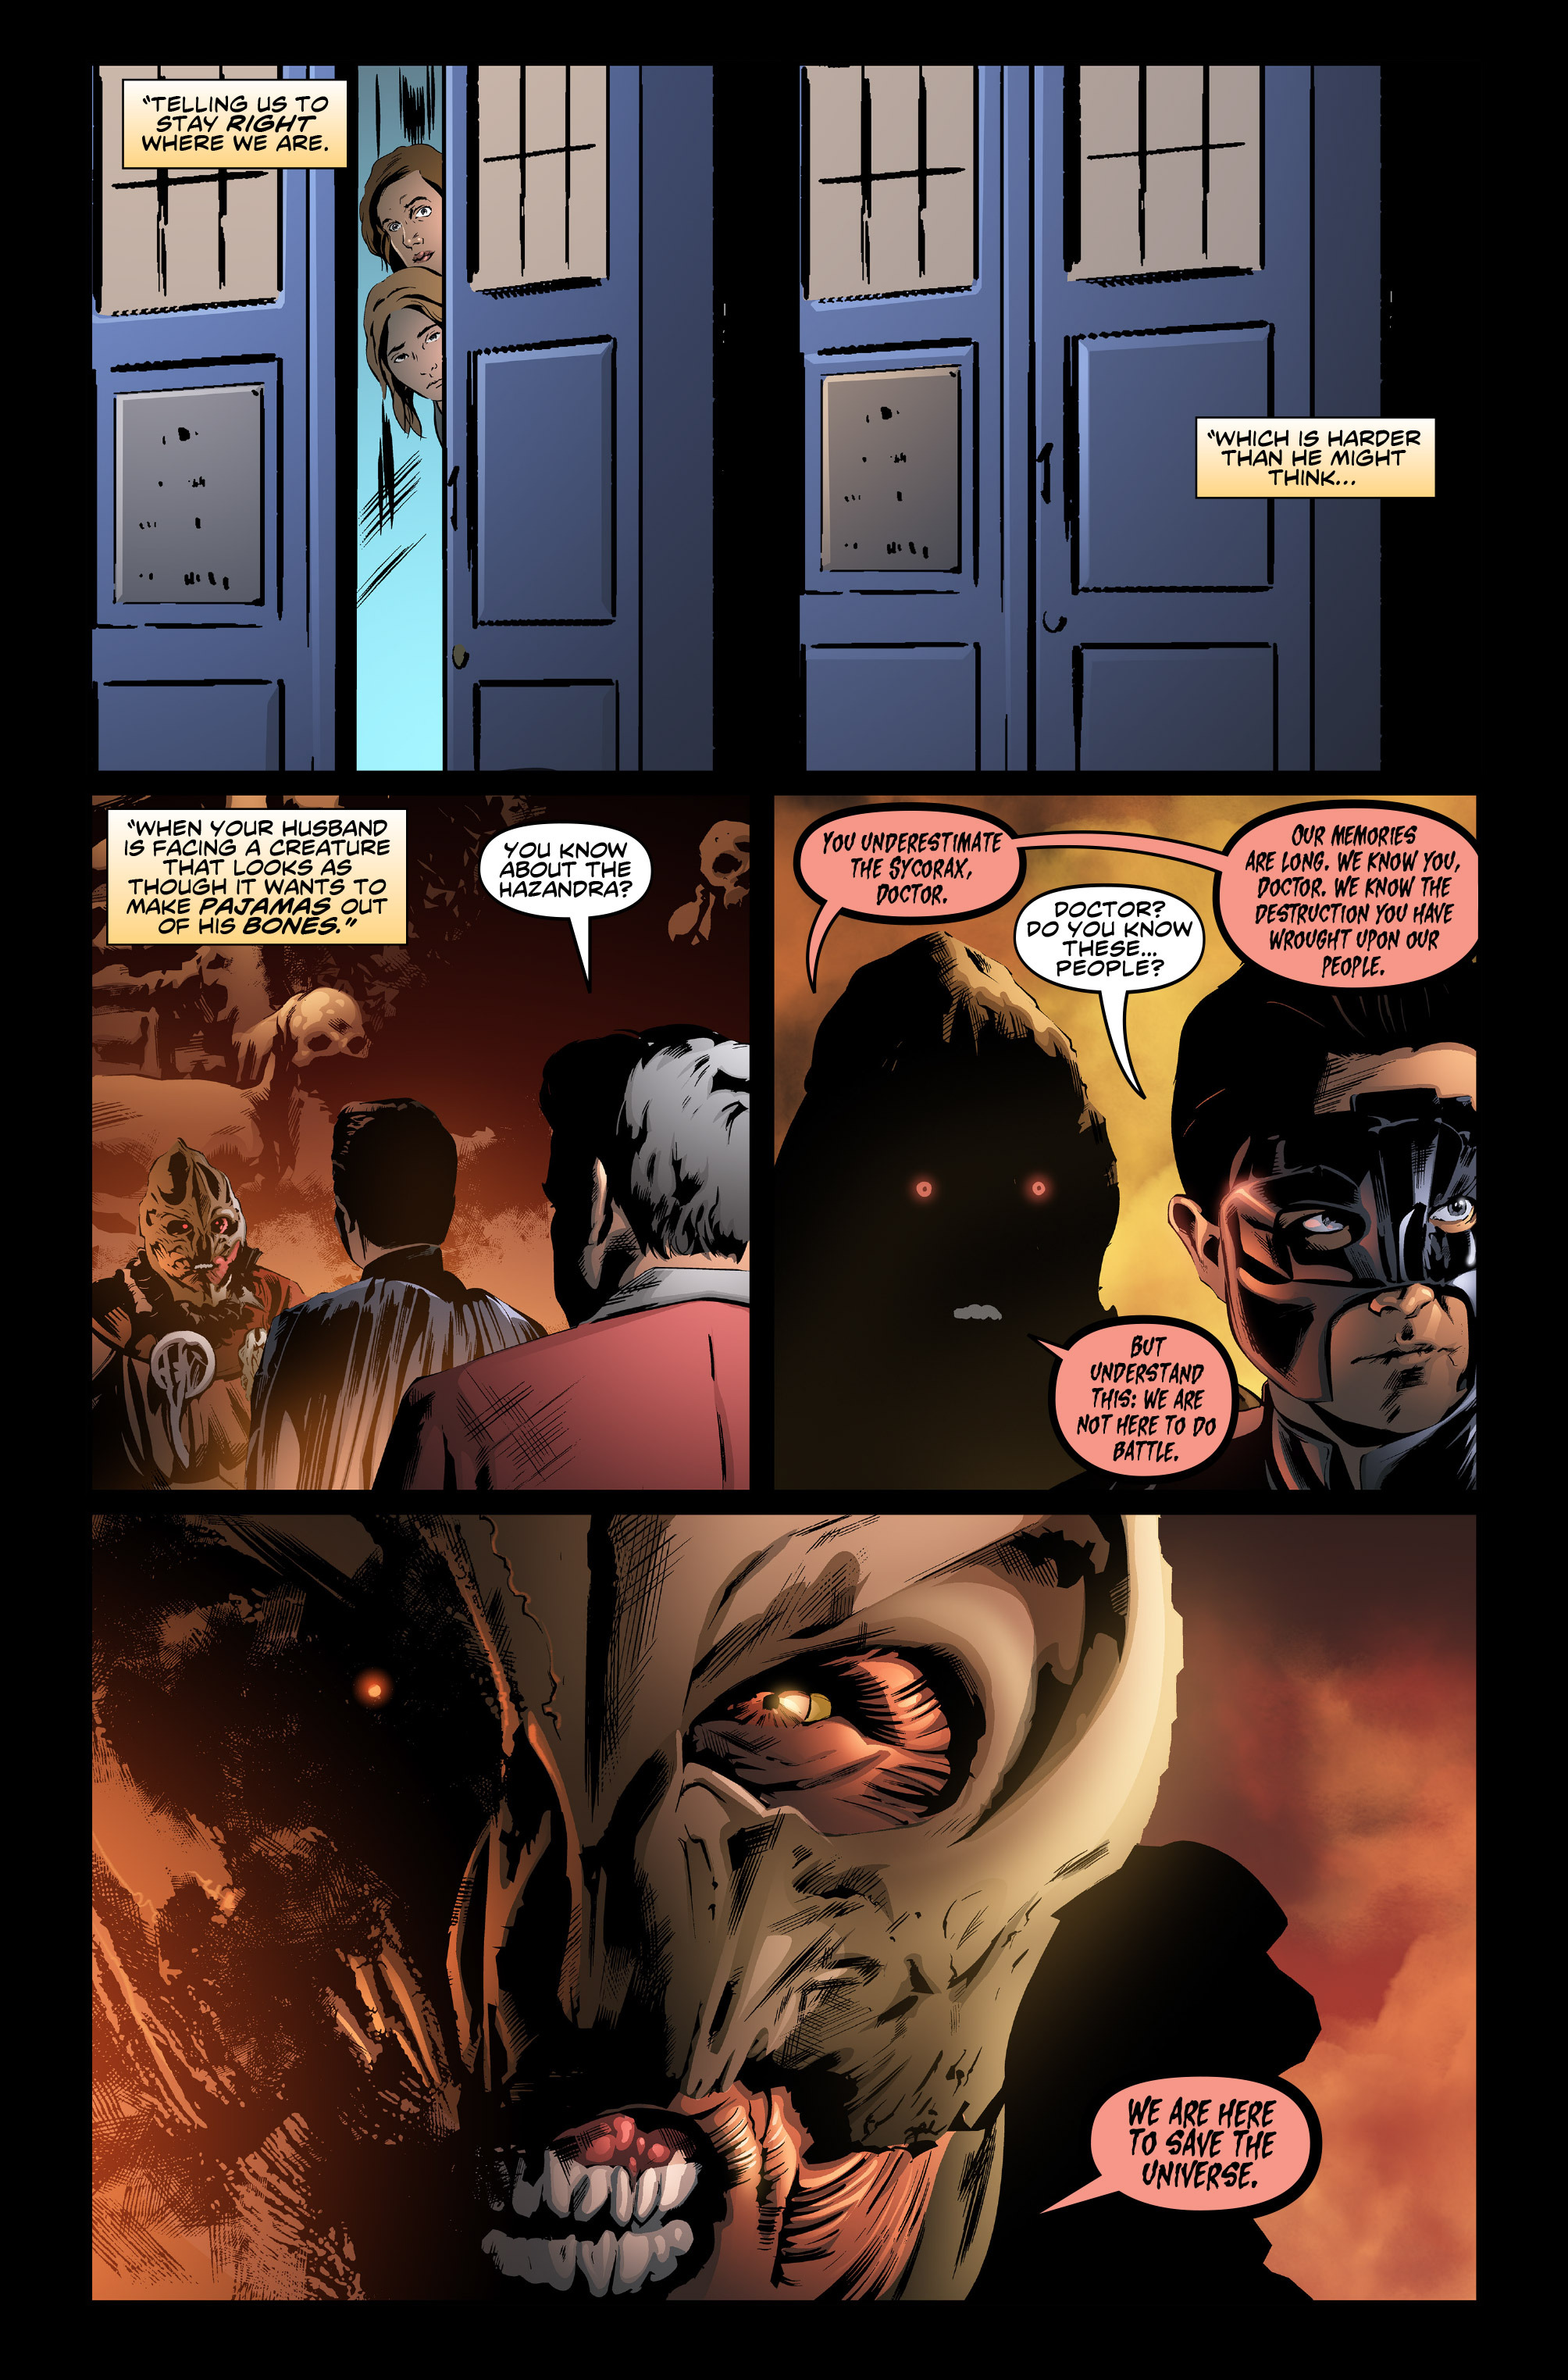 Doctor Who: Ghost Stories chap 6 pic 5